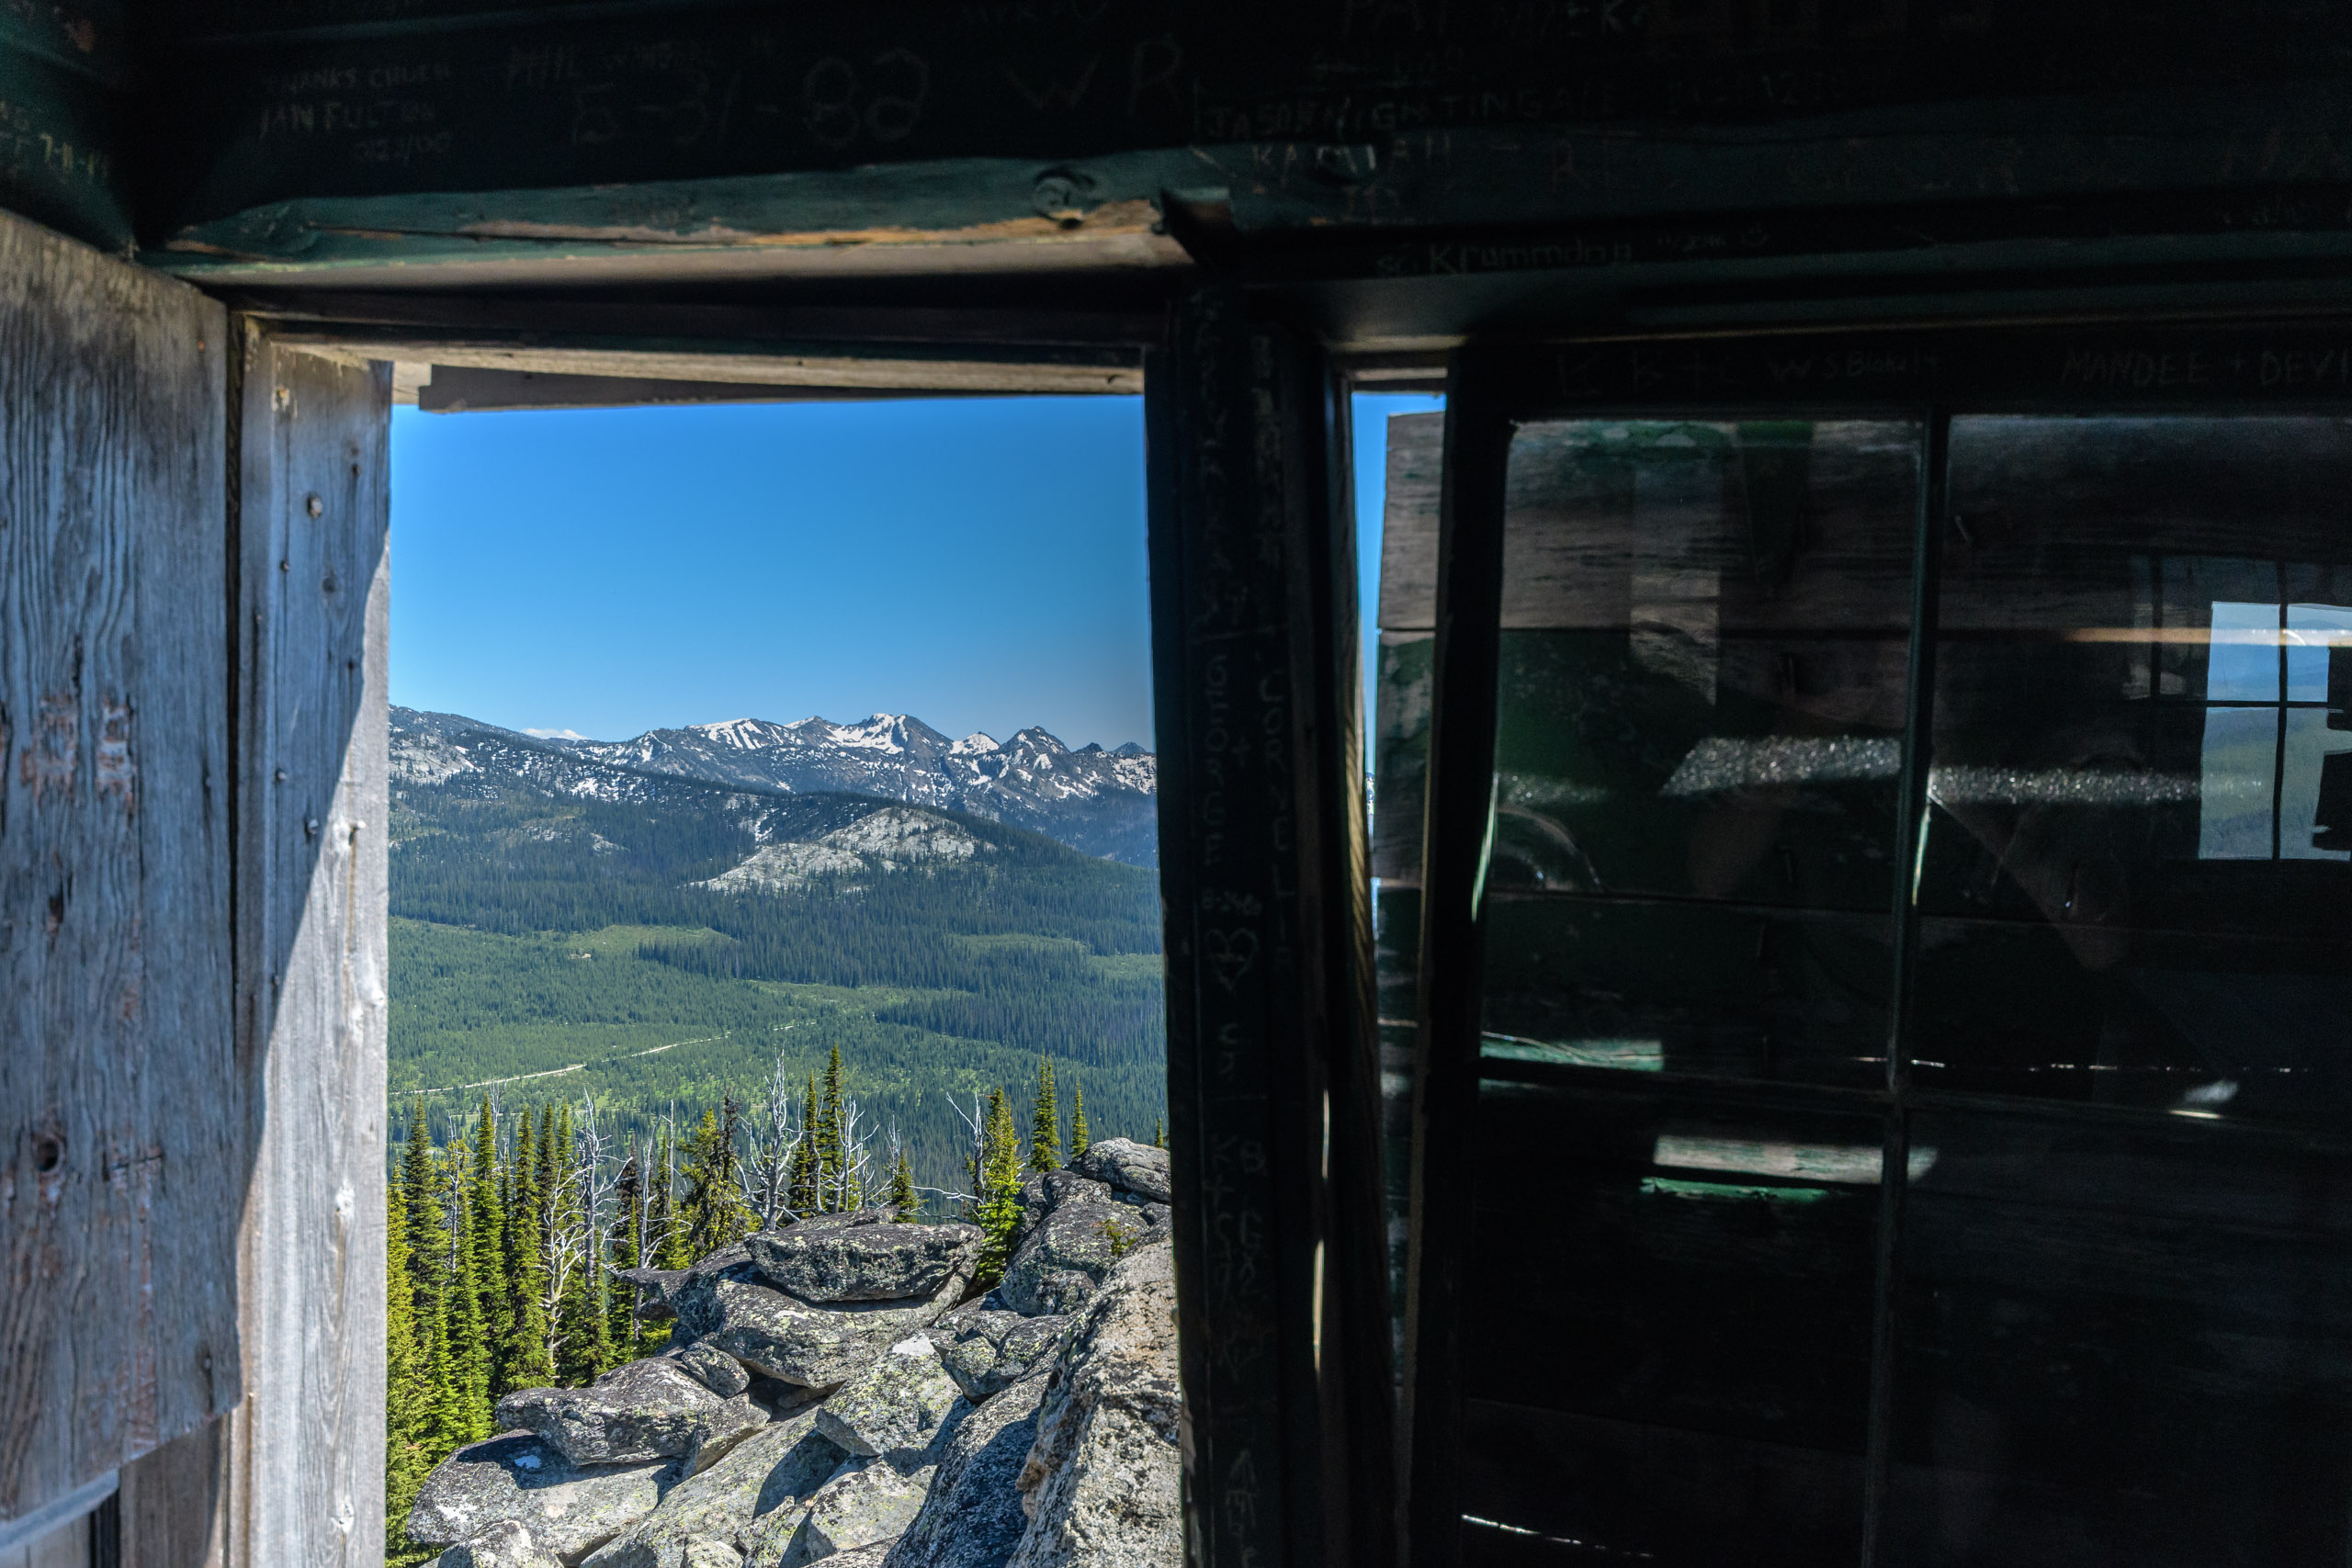 Now that is a cabin view